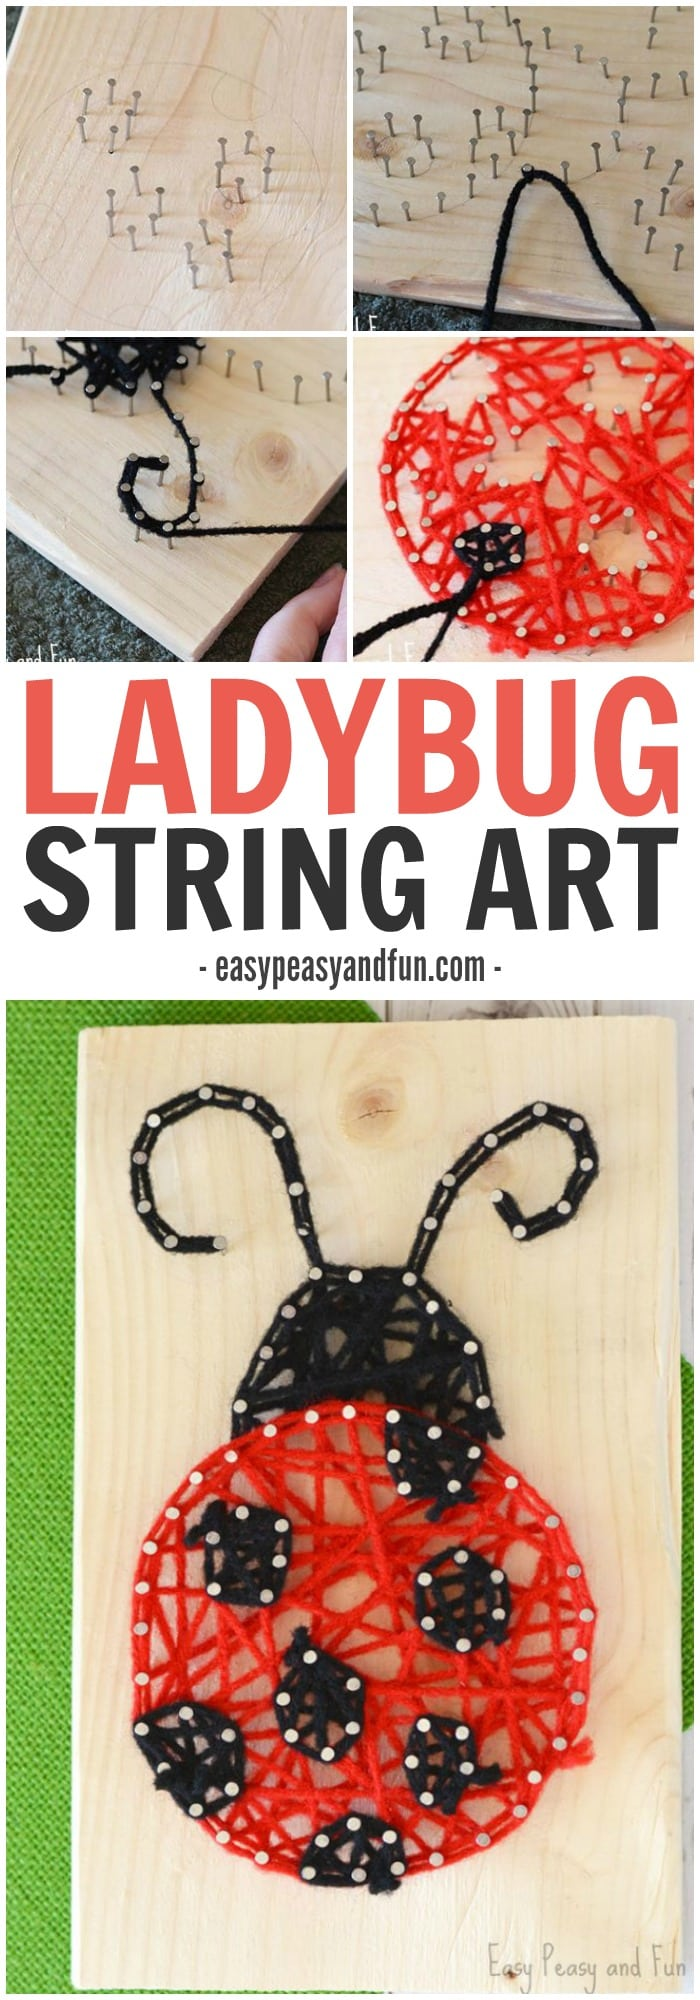 Adorable Ladybug String Art